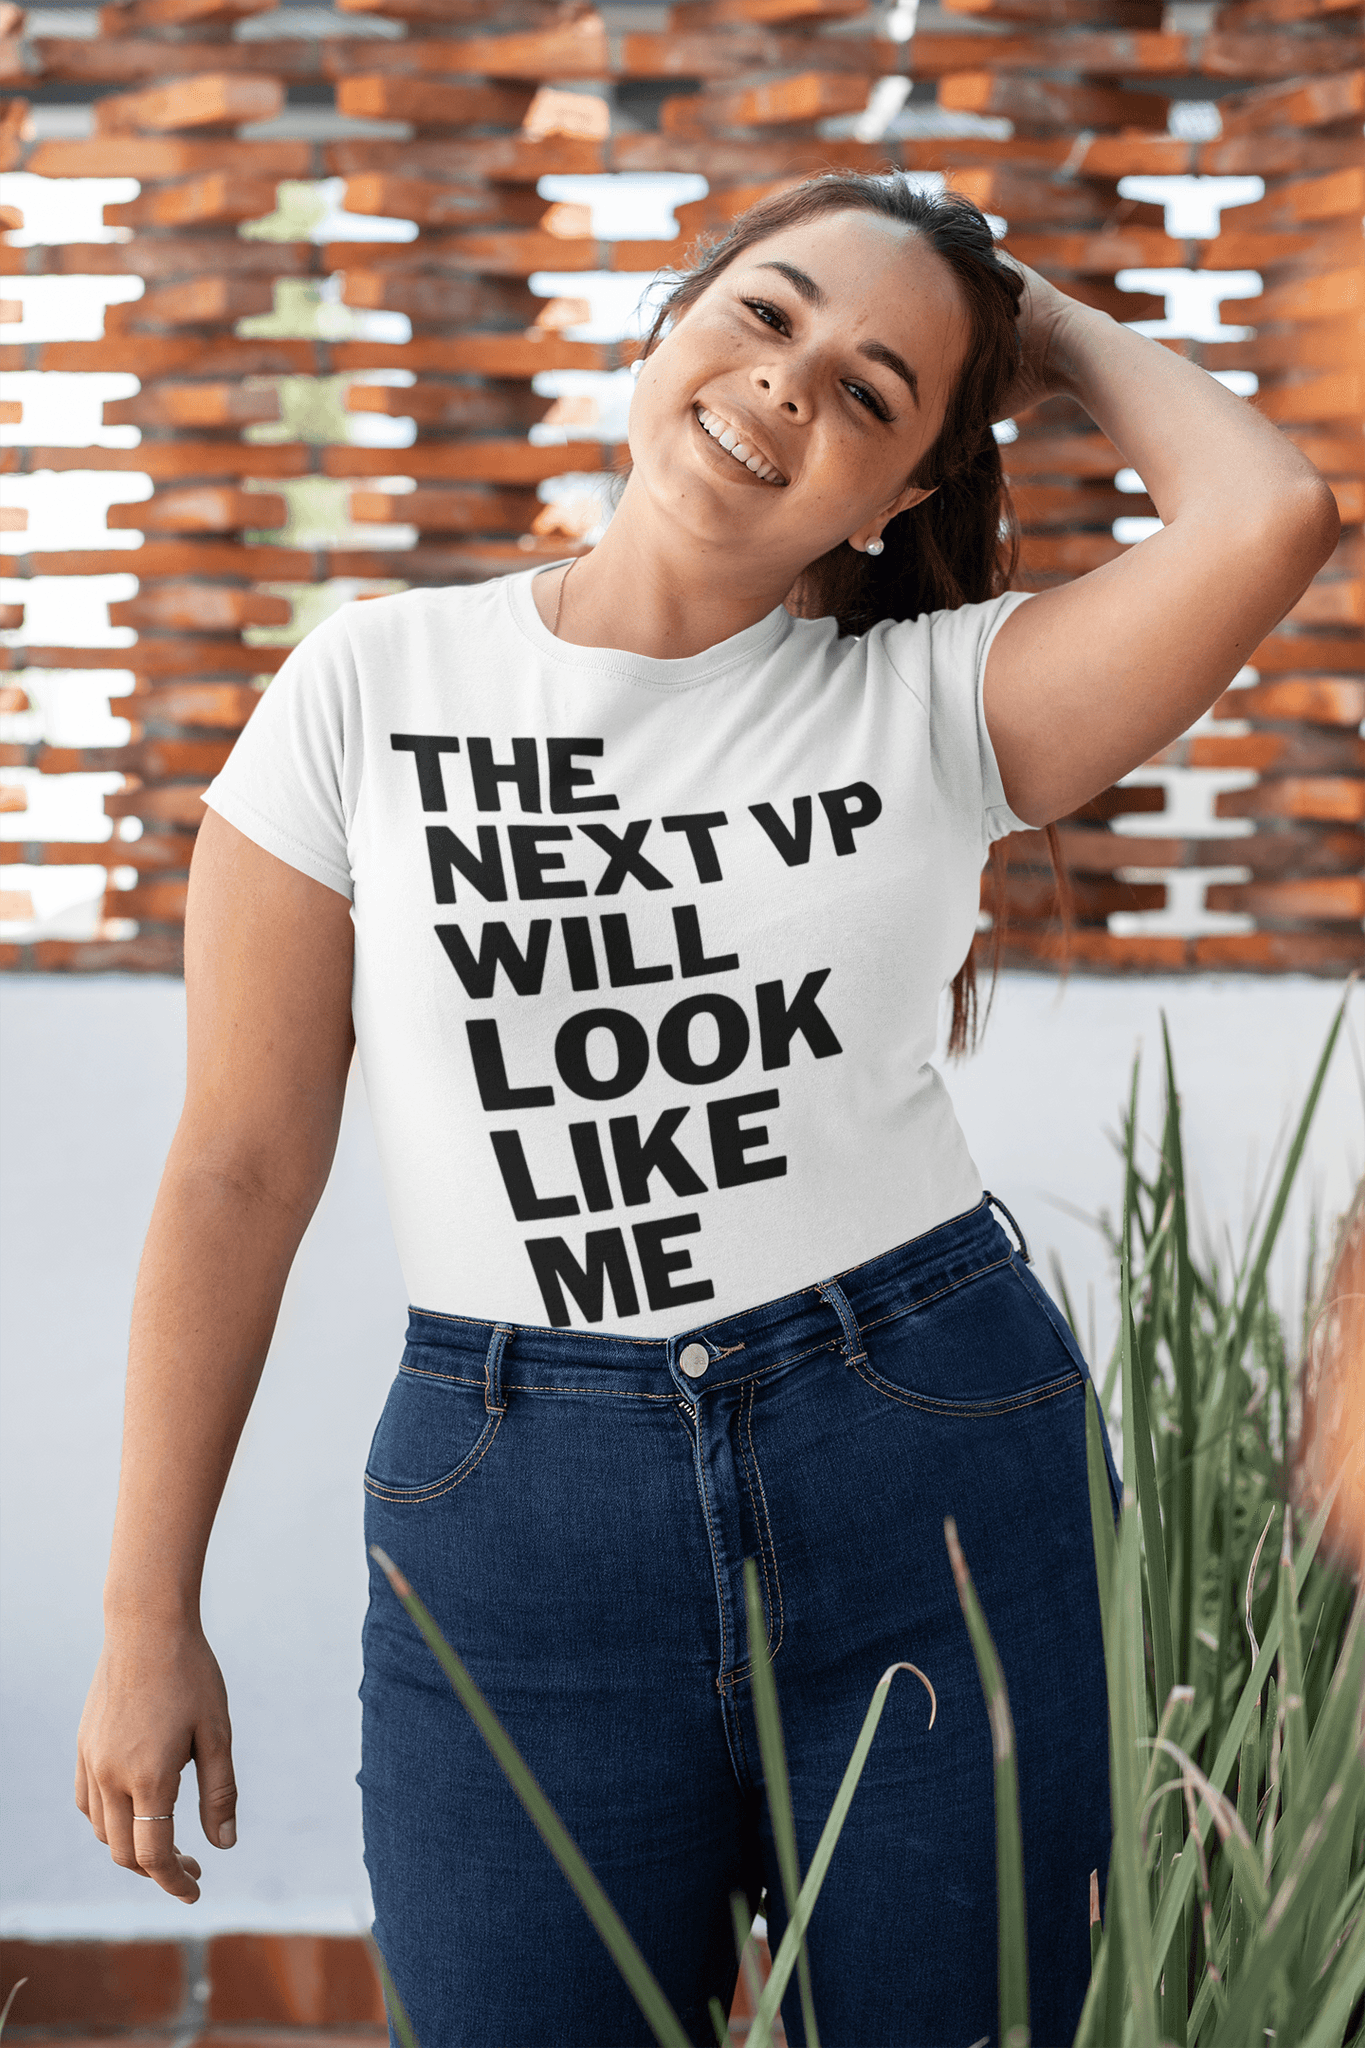 Biden, VP, 2020, 2021, Kamala Harris, Susan Rice, Elizabeth Warren, Karen Bass, Tammy Duckworth, Election, Campaign, Latina, Latino, Women, Woman, T-Shirt, Crewneck